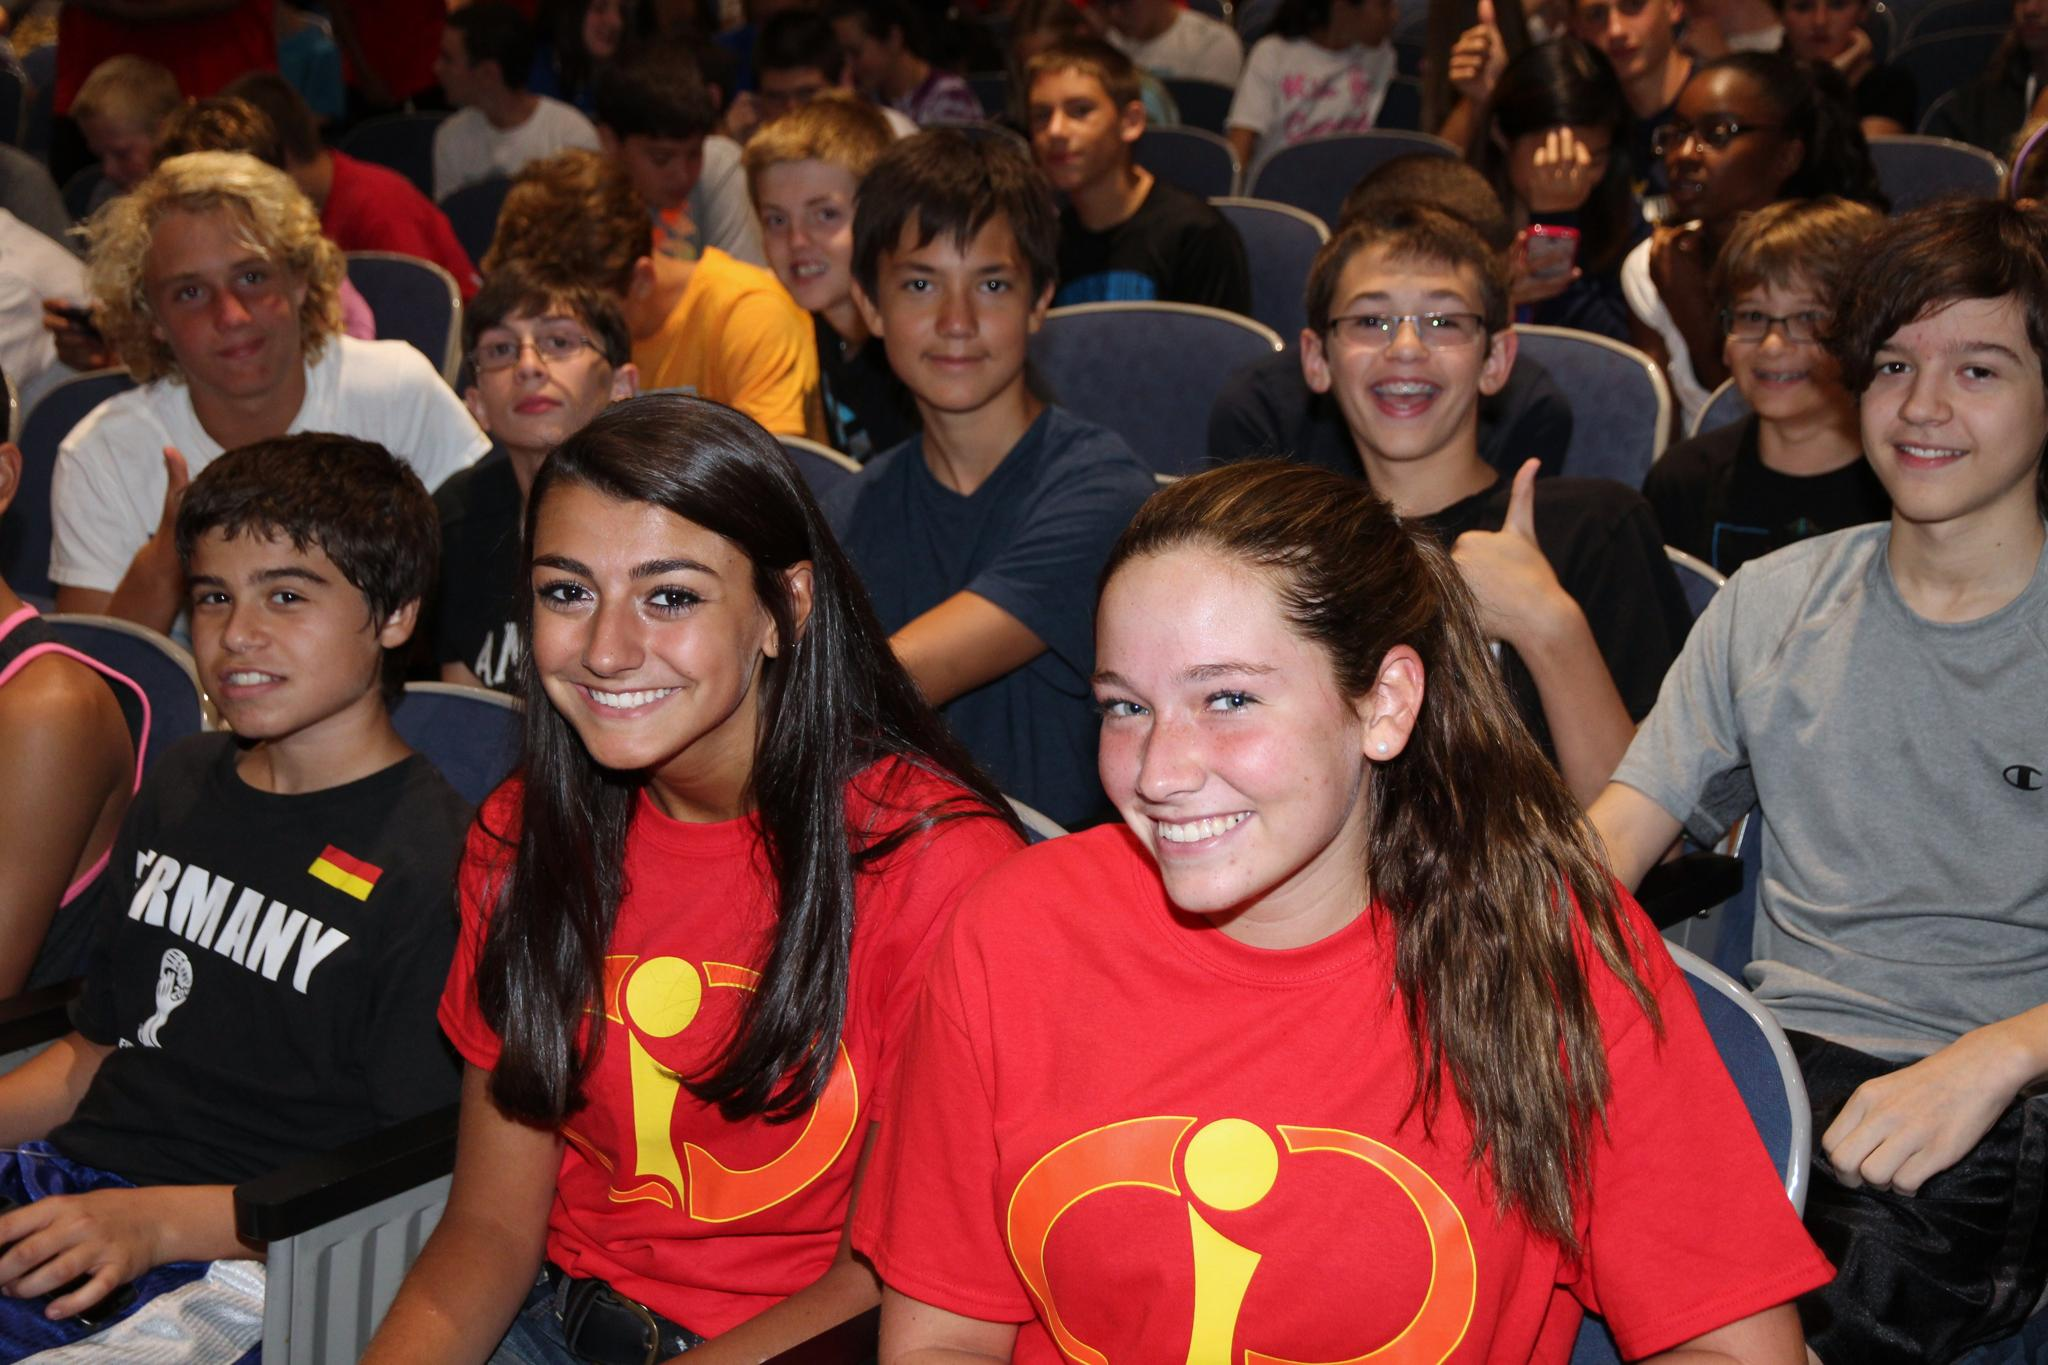 Ignition 2014 - Students Gear-Up for the New School Year